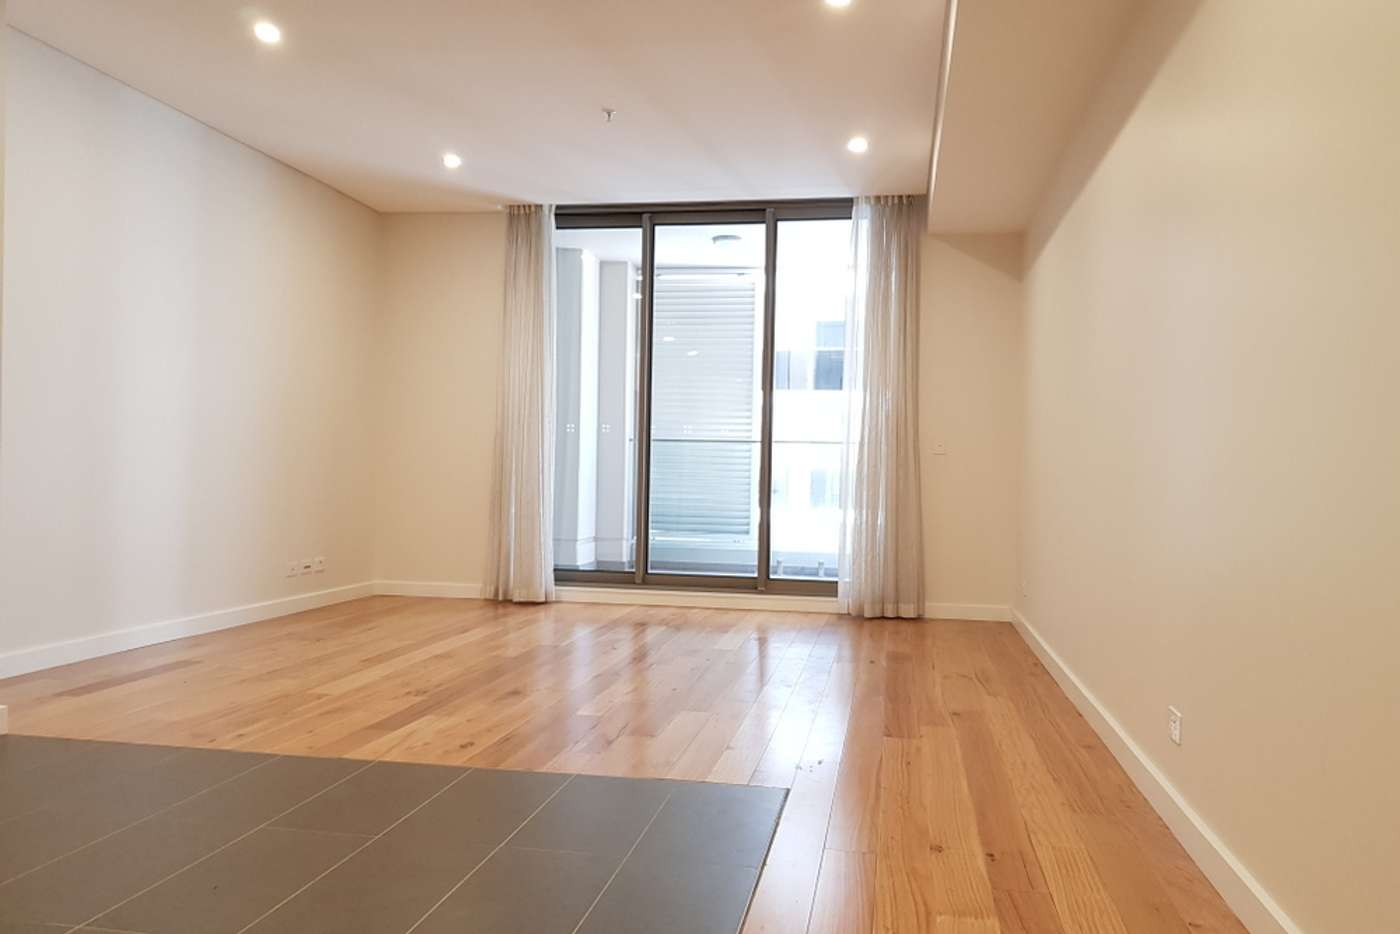 Main view of Homely apartment listing, 206/5 Atchison St, St Leonards NSW 2065